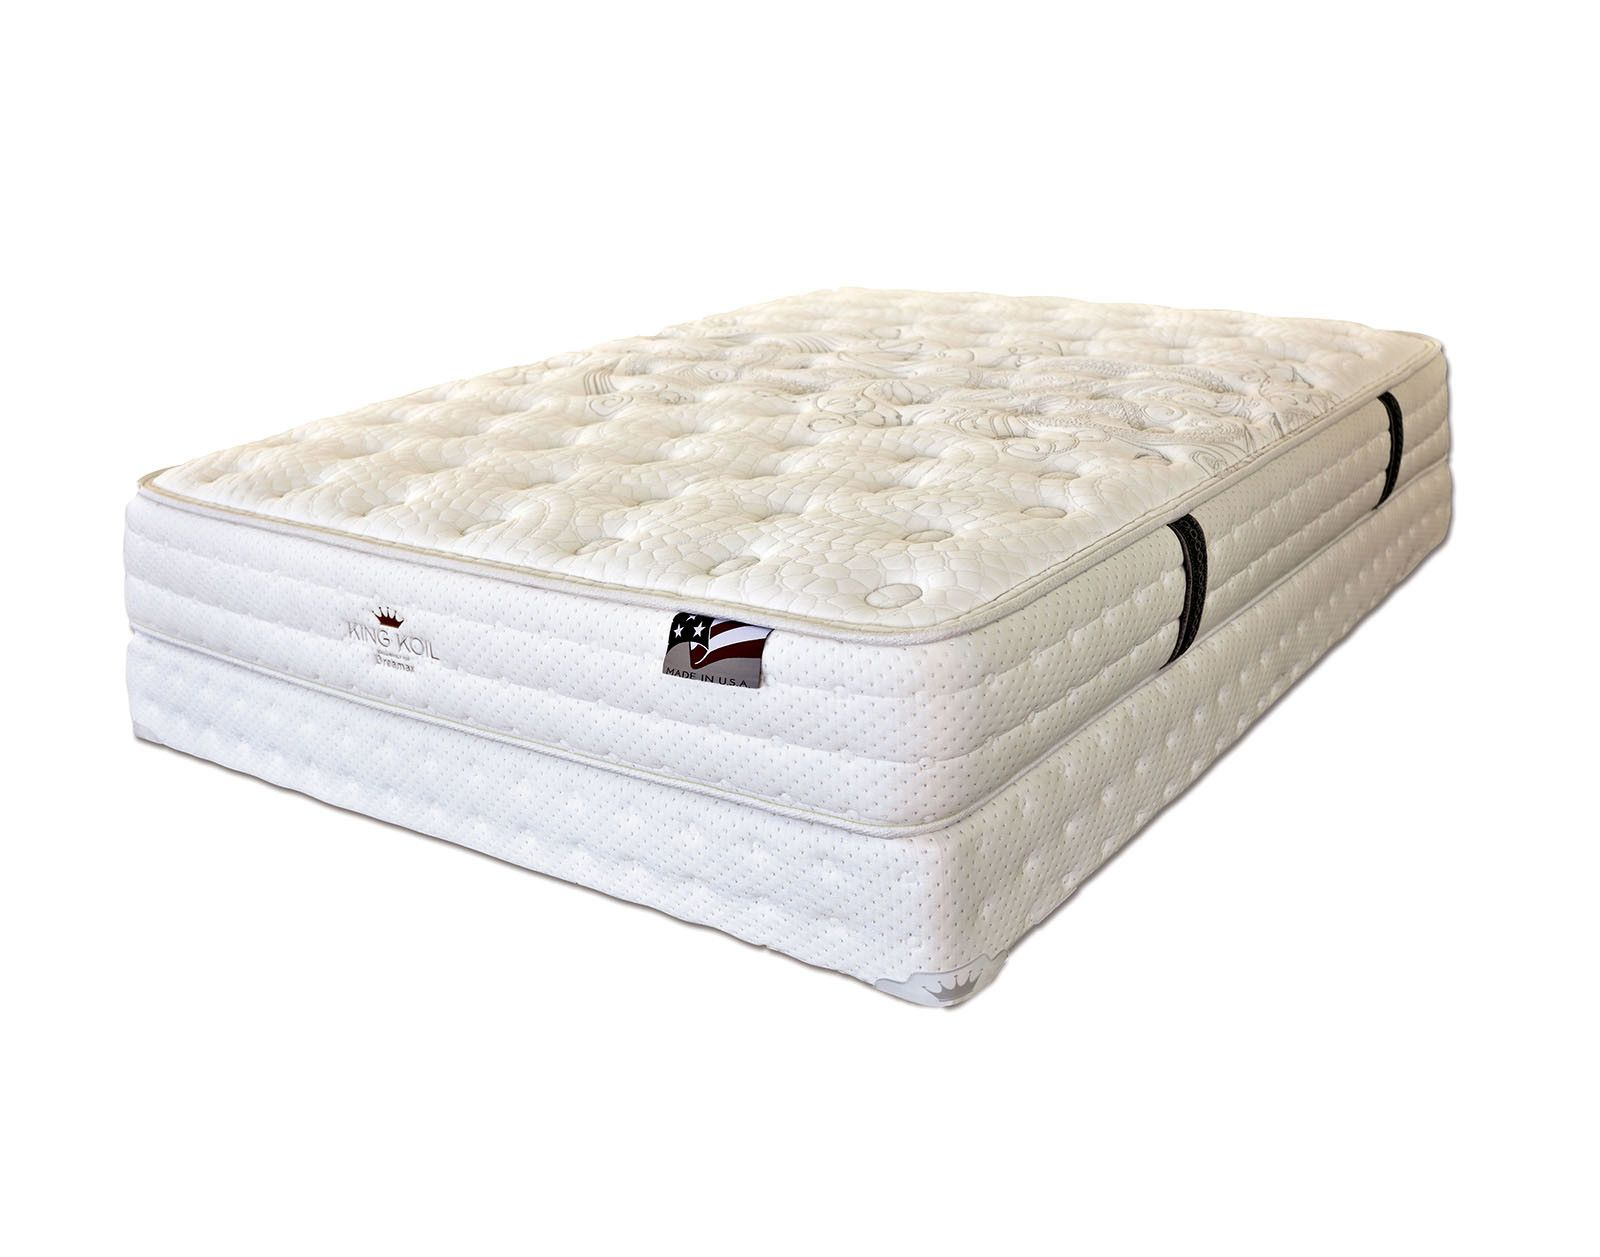 alyssum iii tight top cal king size mattress dm157ckdescription